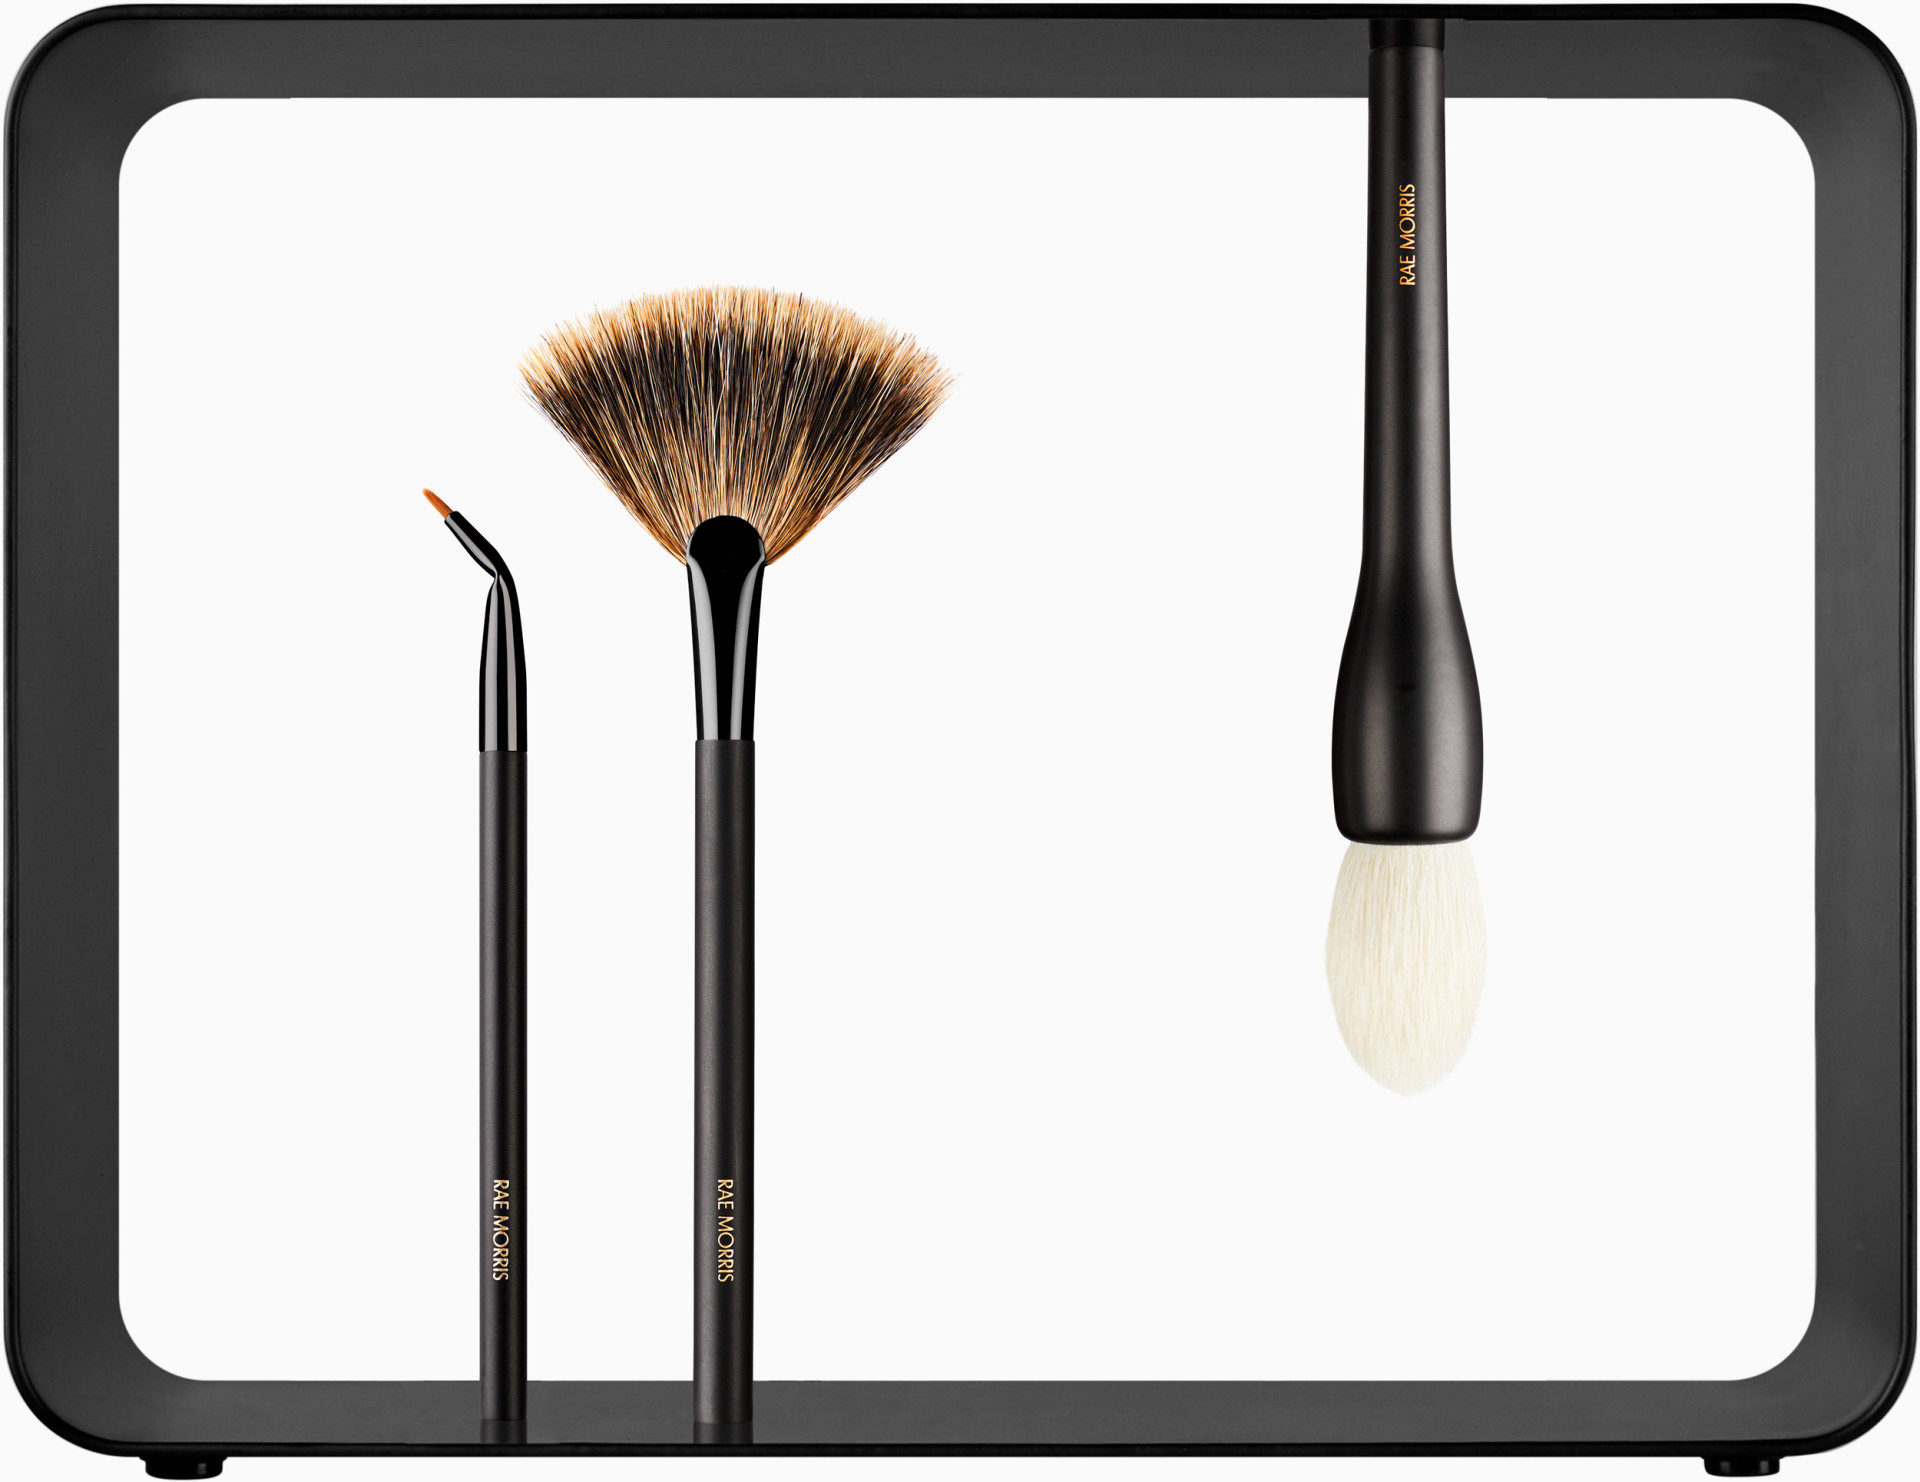 rae morris brushes. subscribe to newsletter rae morris brushes